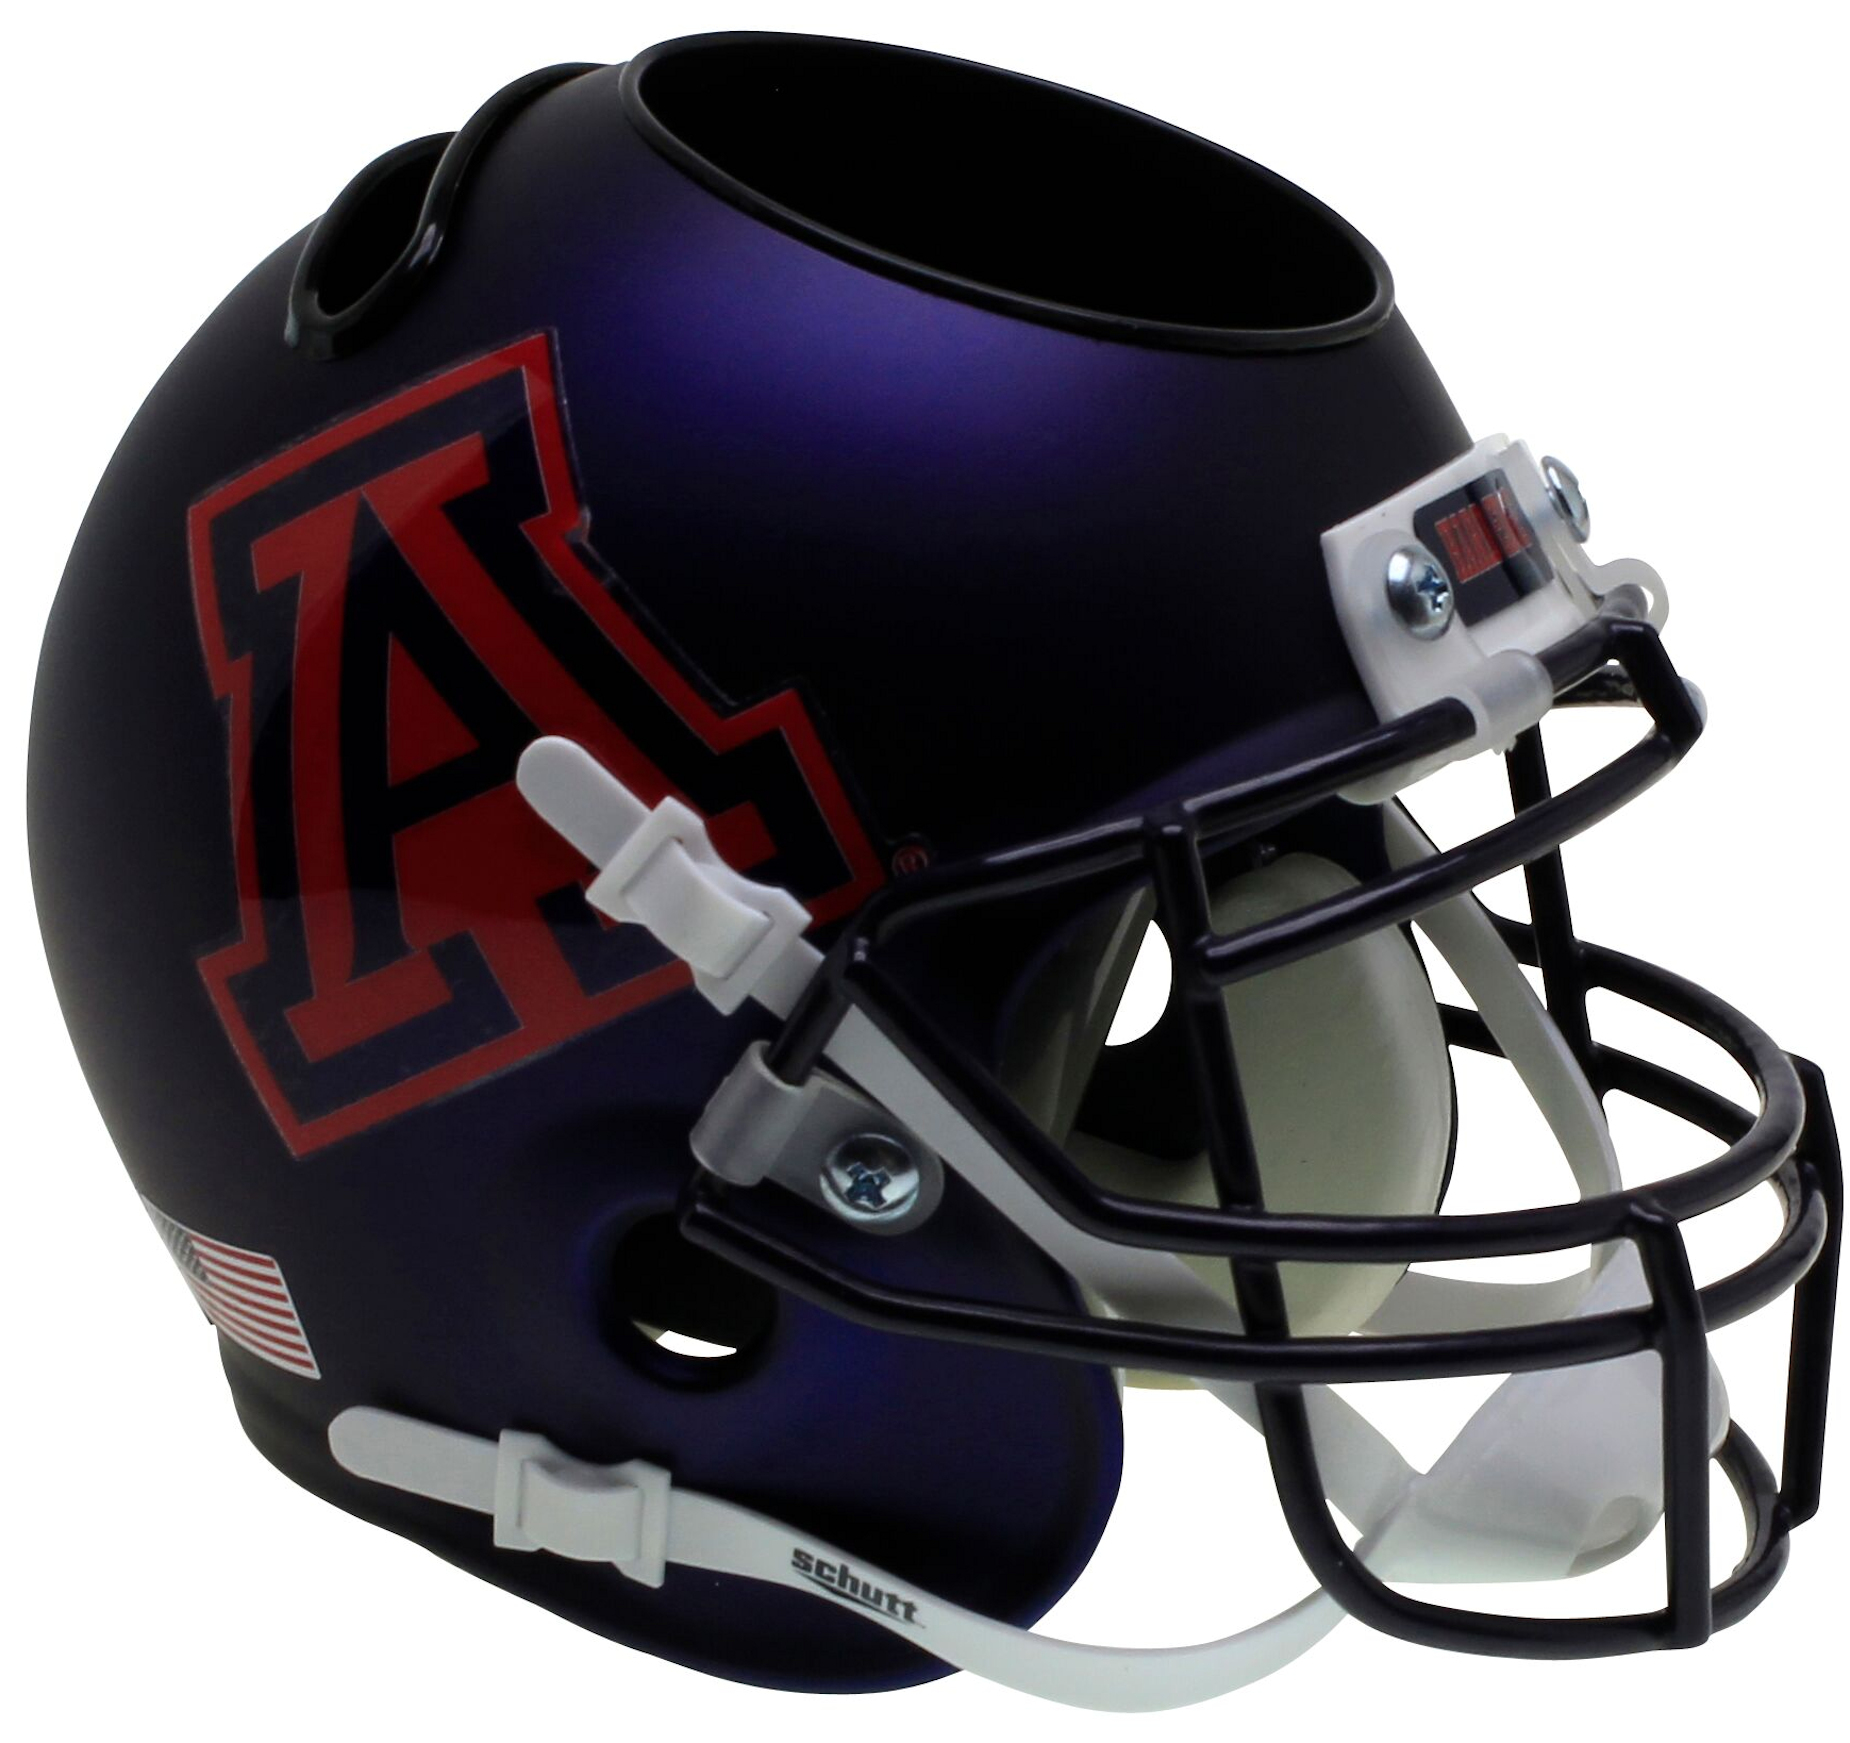 Arizona Wildcats Miniature Football Helmet Desk Caddy <B>Satin Navy</B>